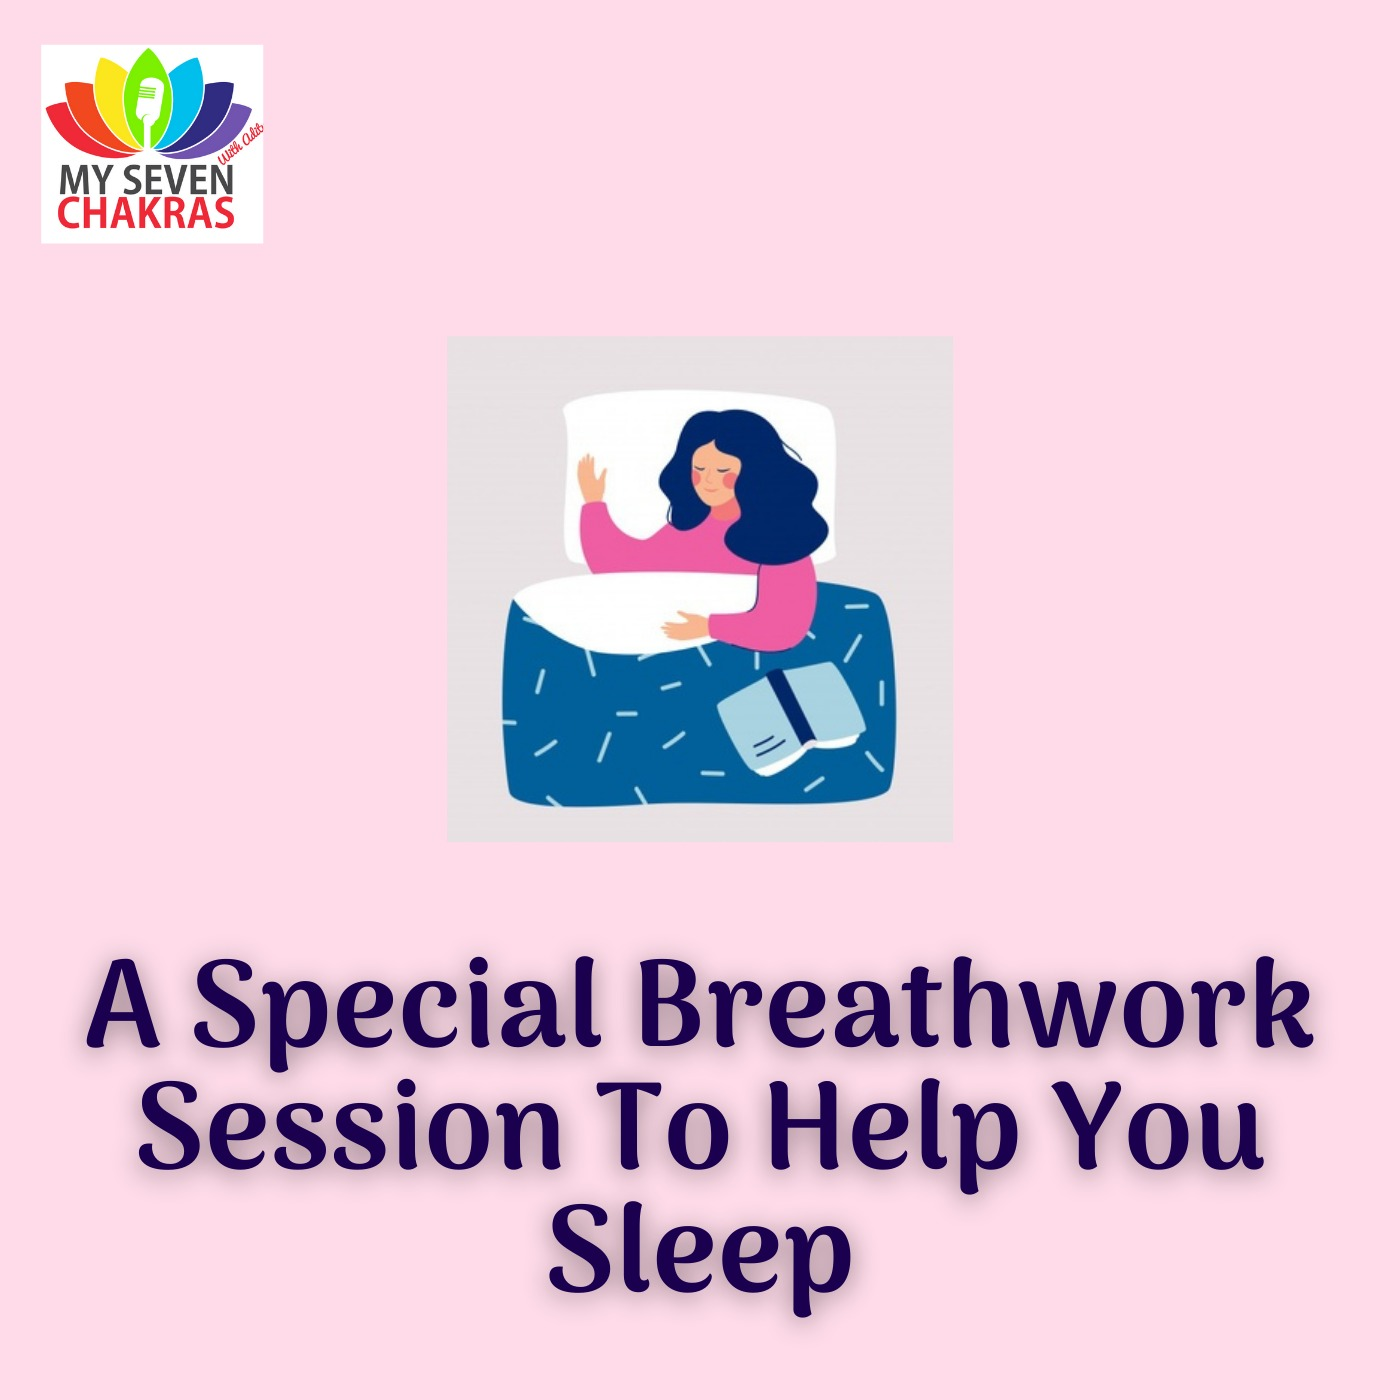 A Special Breathwork Session To Help You Sleep